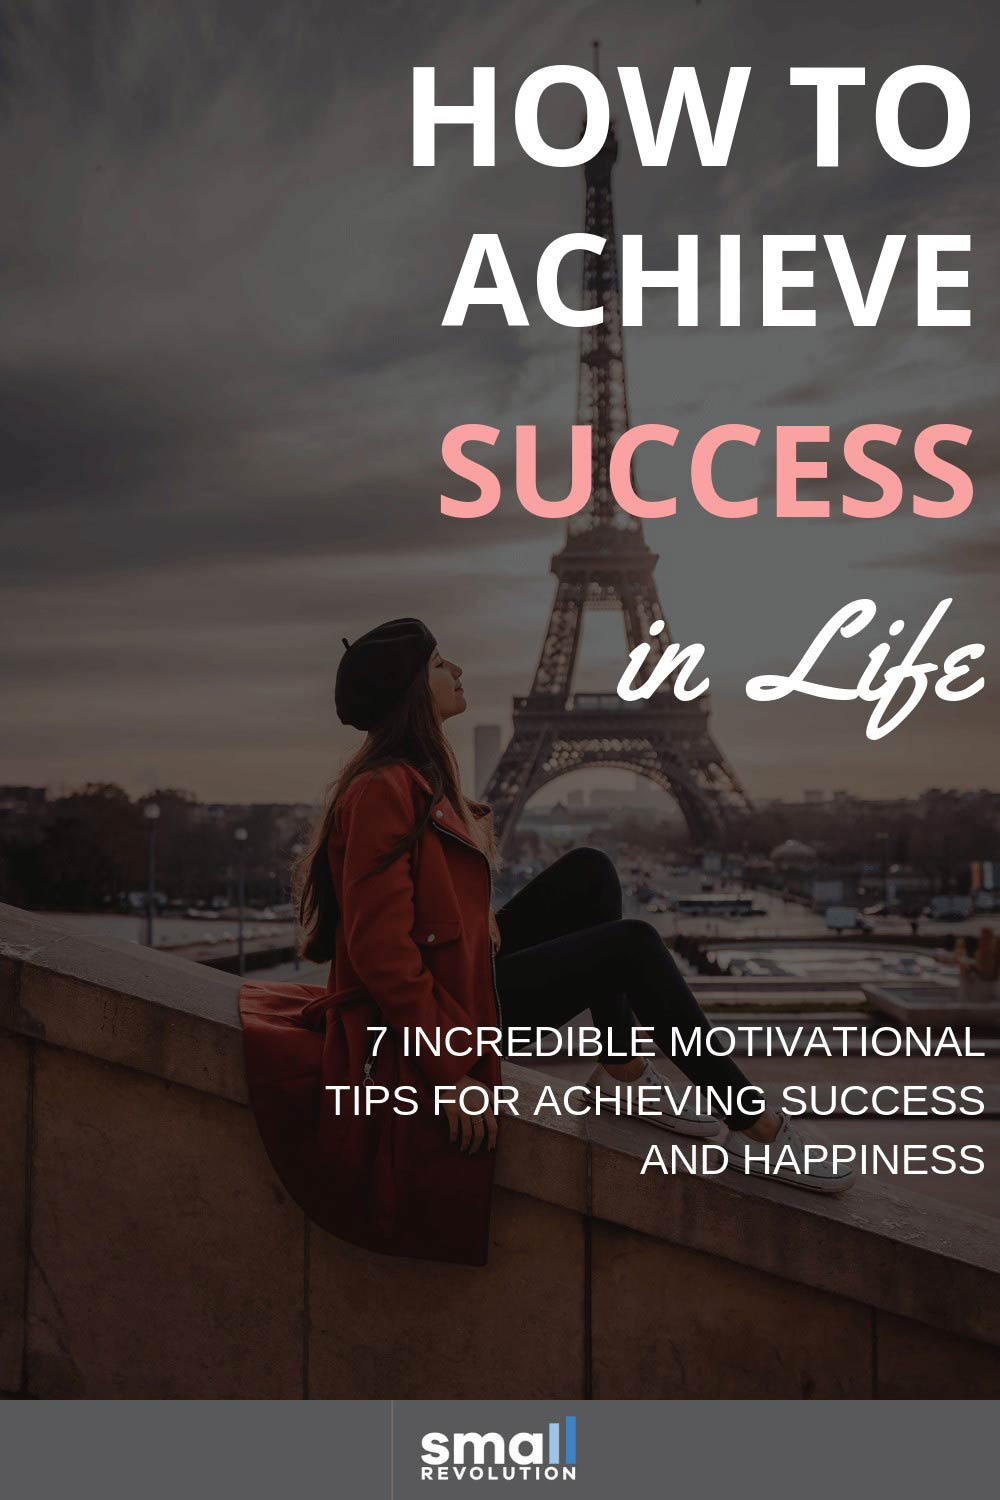 How to achieve success in life